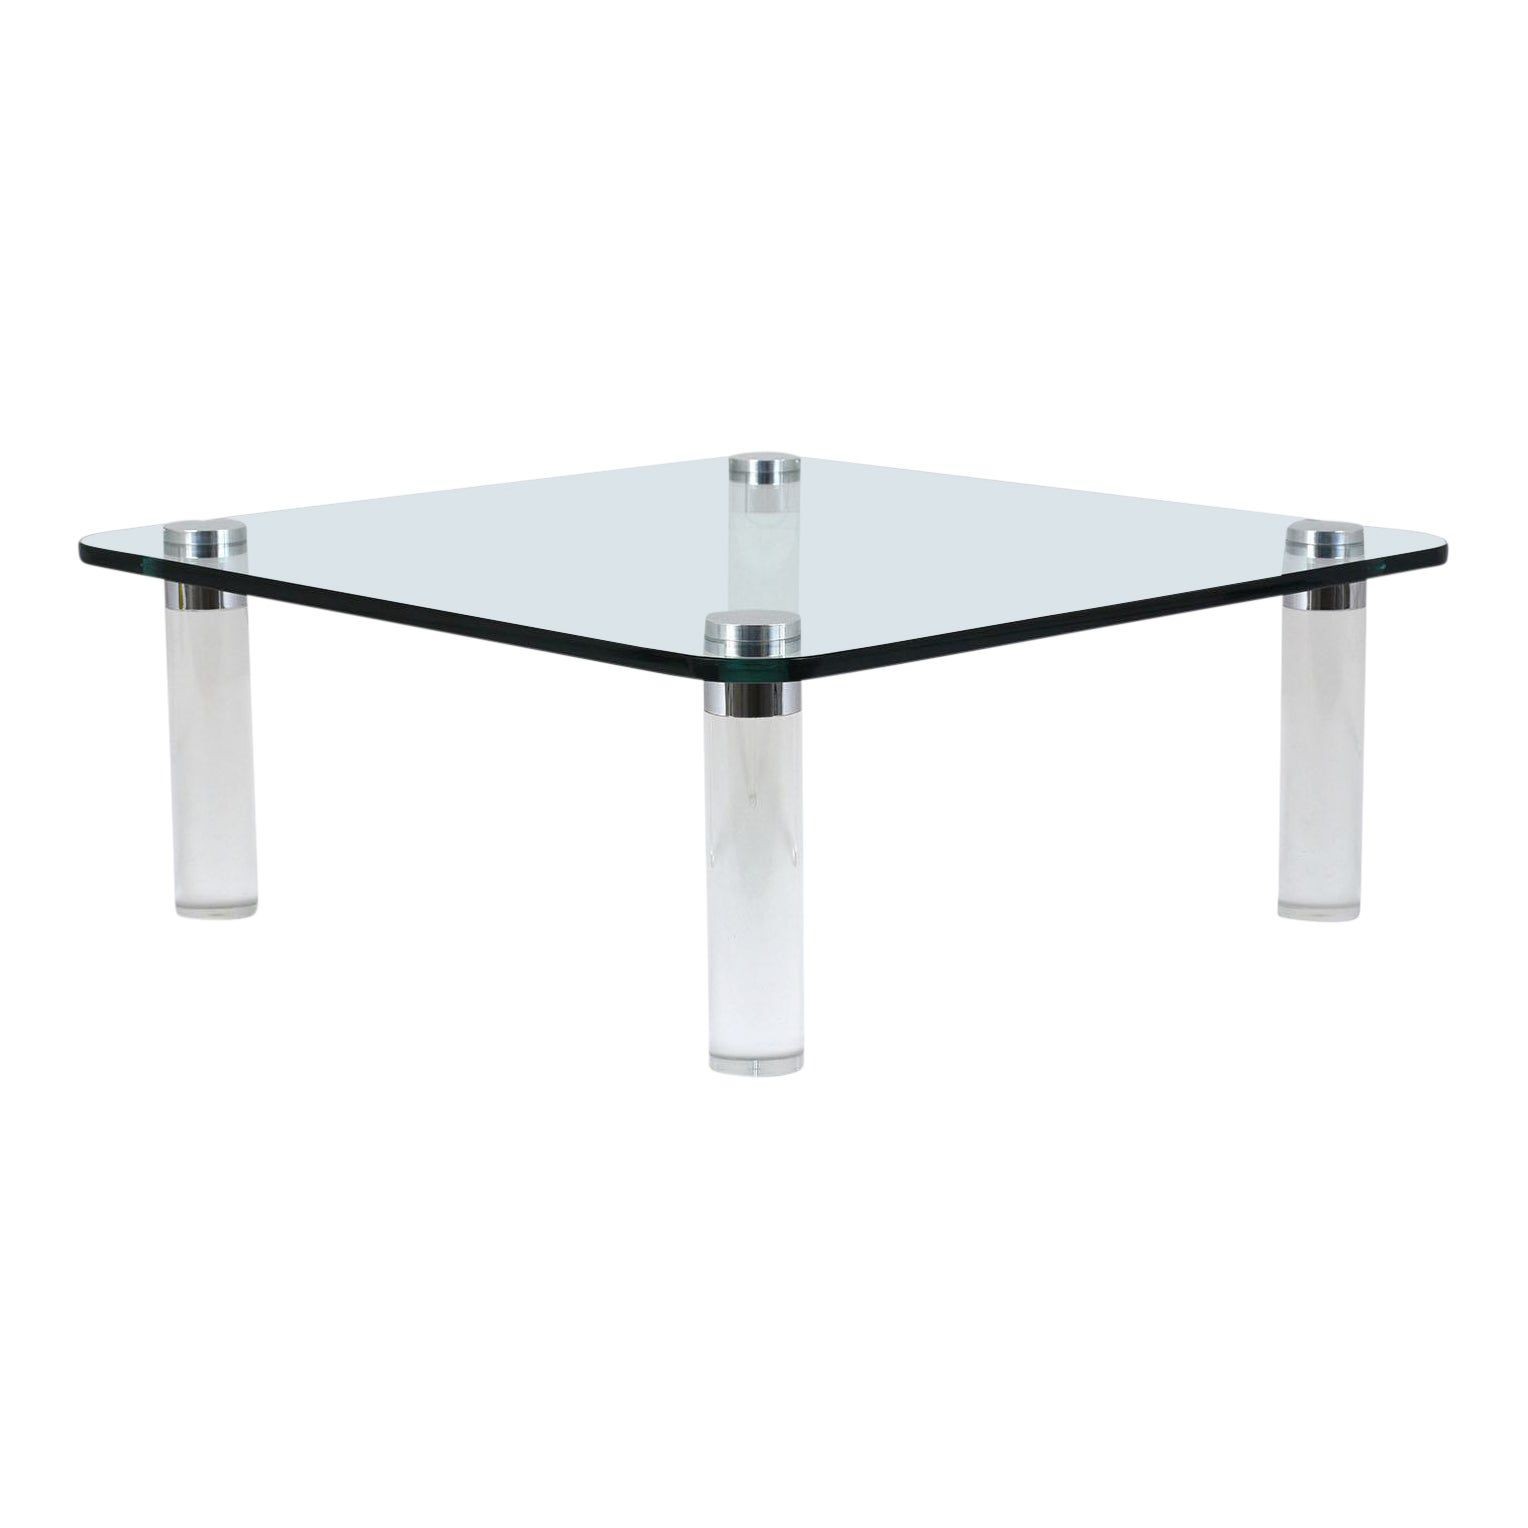 Midcentury modern lucite coffee table